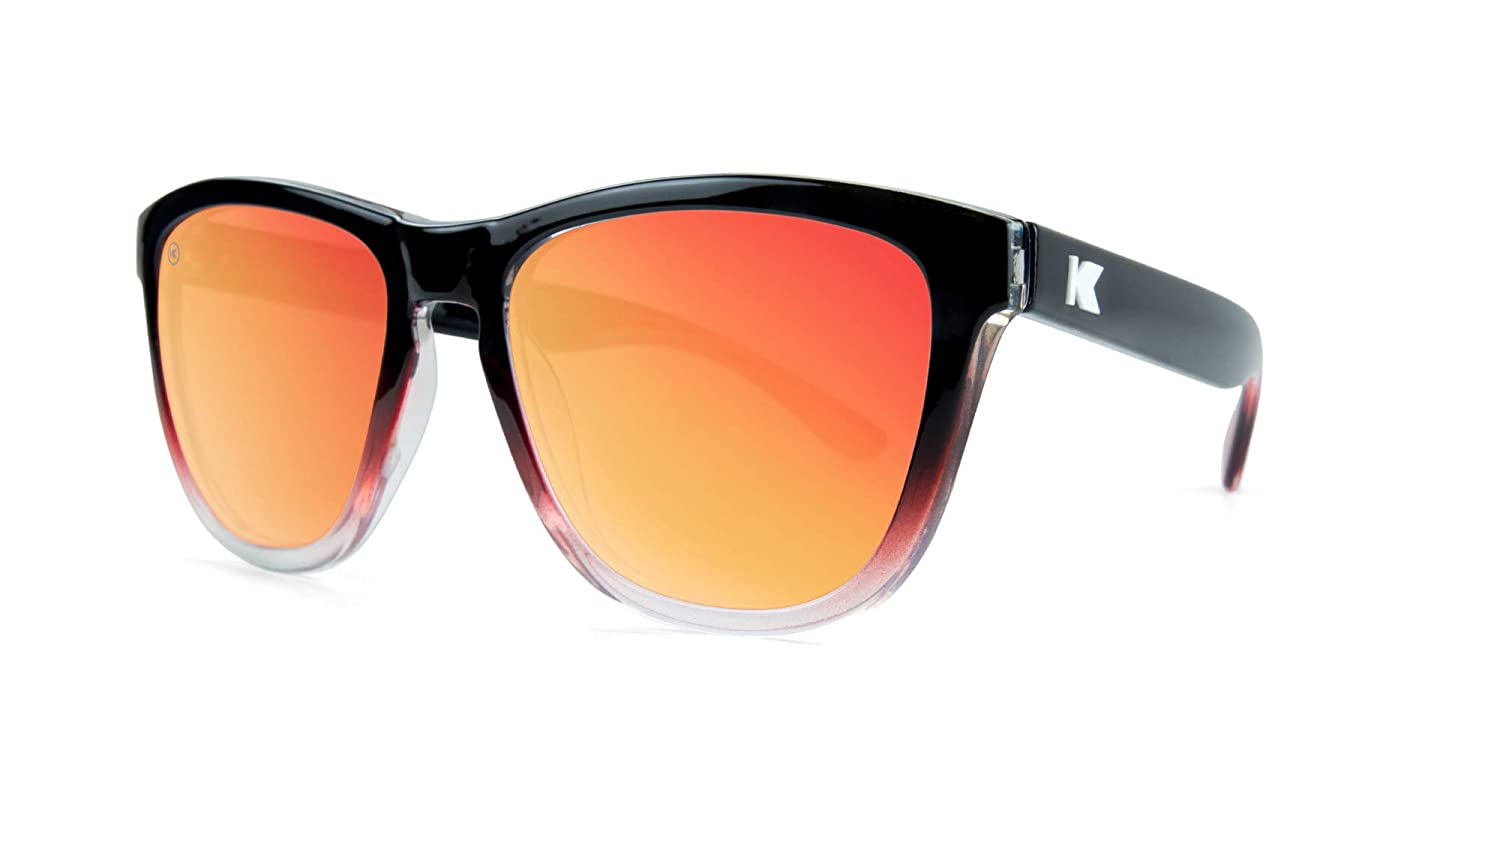 43c7c3dfca Amazon.com  Knockaround Premiums Polarized Sunglasses